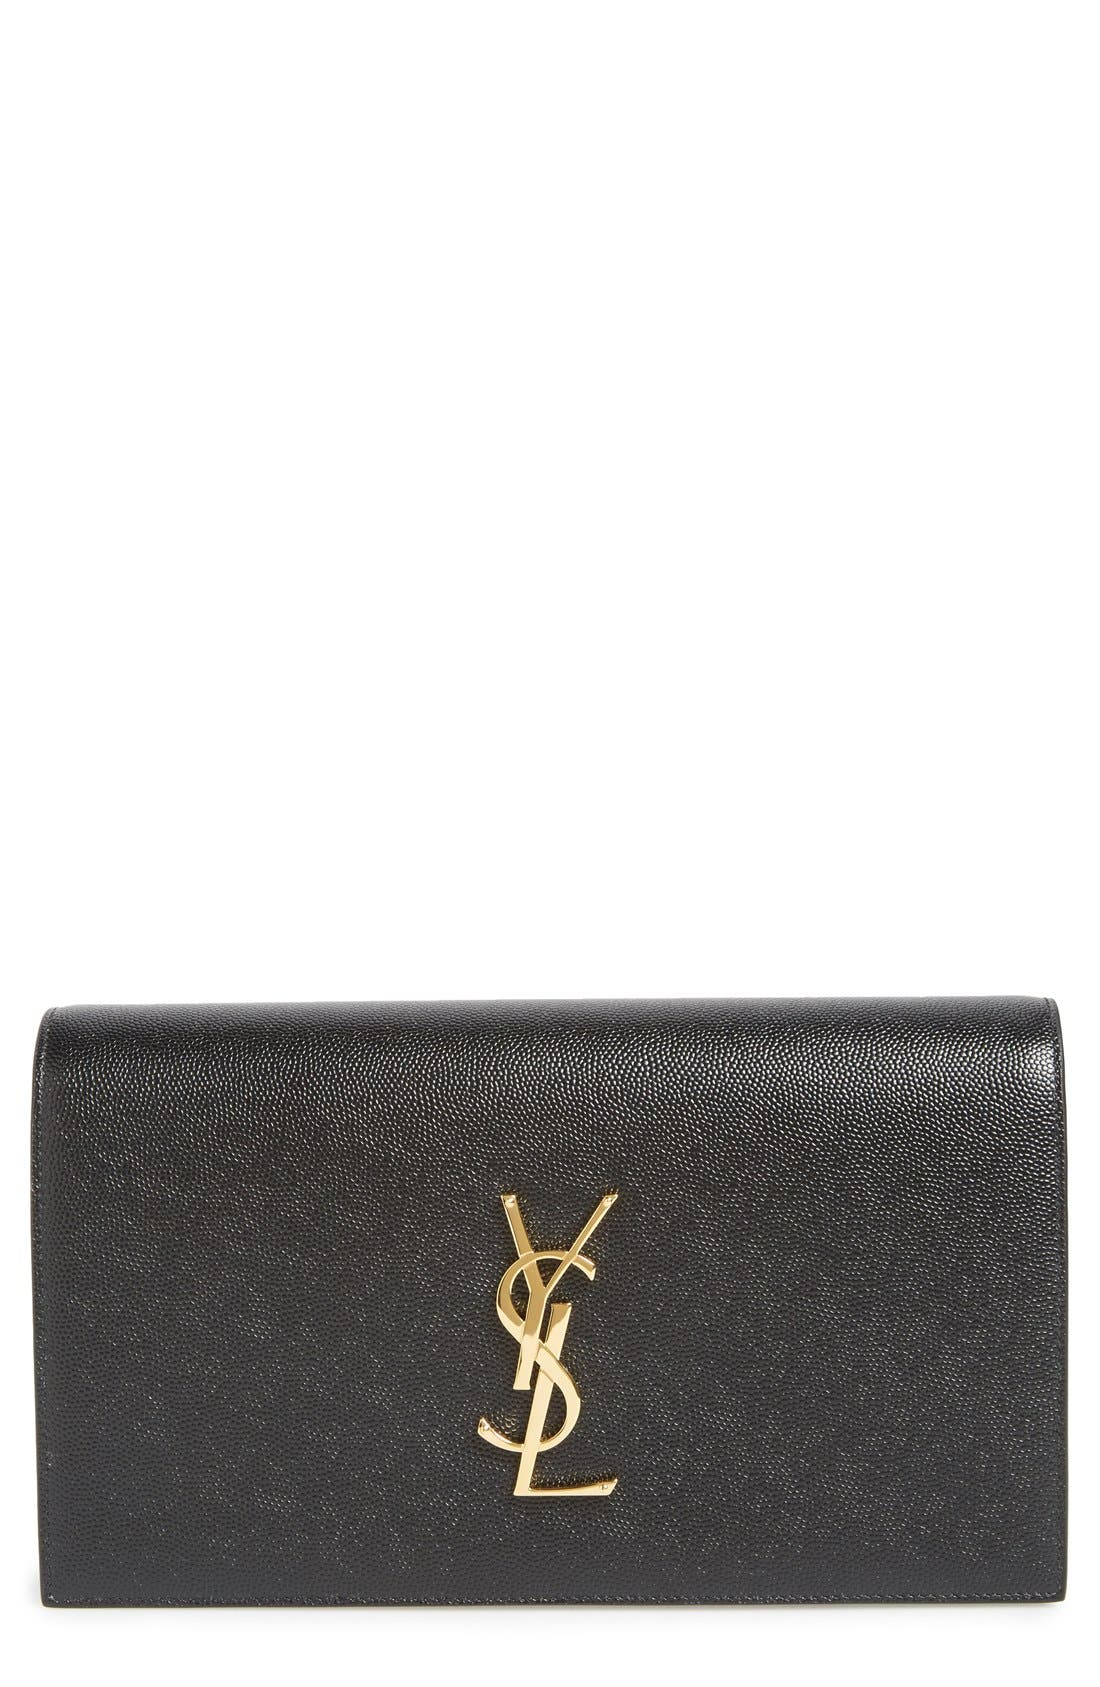 SAINT LAURENT, 'Monogram' Leather Clutch, Main thumbnail 1, color, NOIR